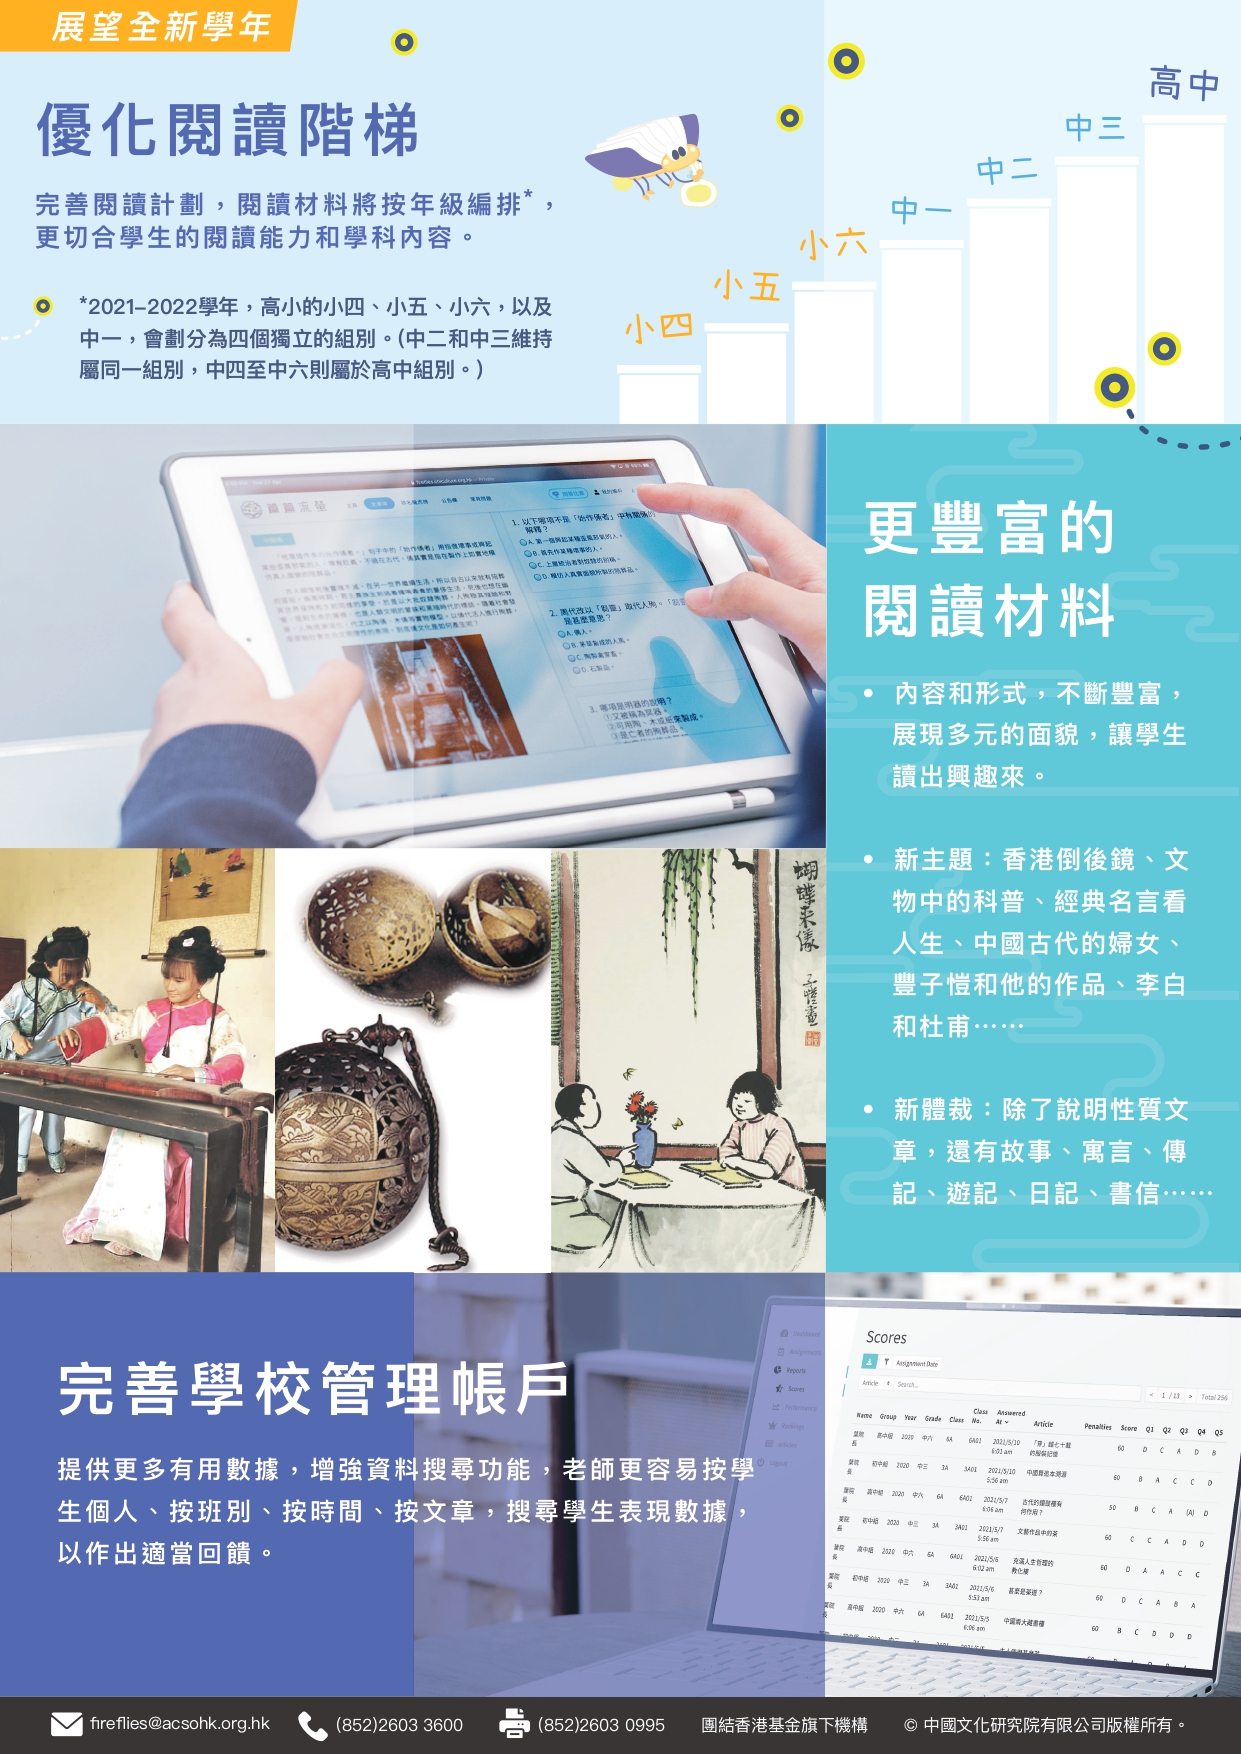 acs_flyer_ffr_20210618_v3.3_pages-to-jpg-0002